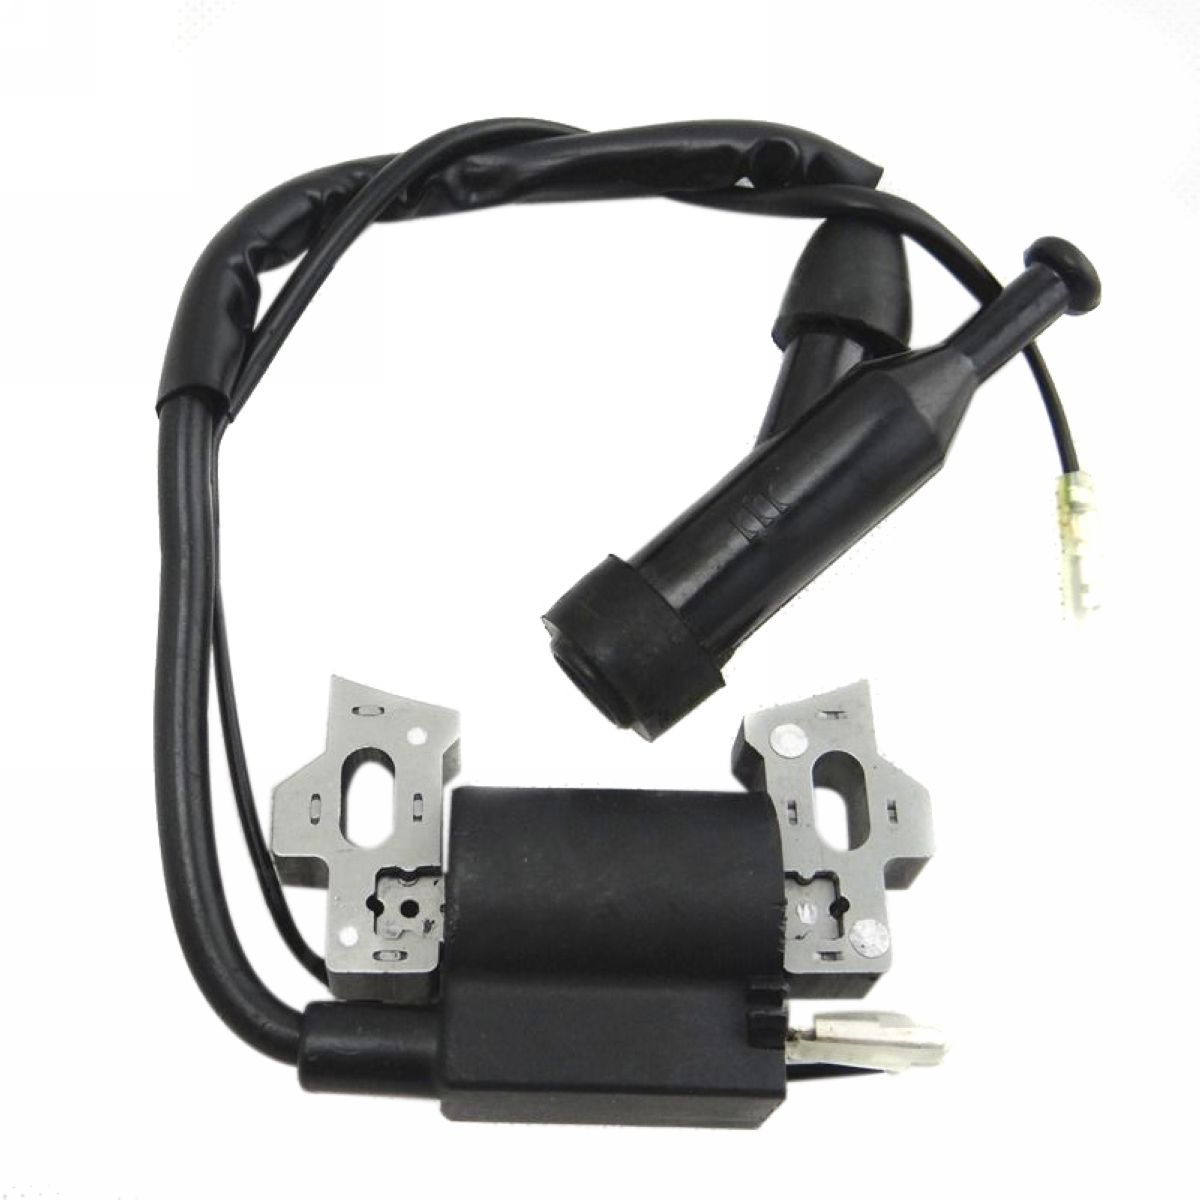 Mayitr Ignition Coil Modul Fit For GX160 GX120 GX200 Engine Generator Black New ignition coil for rcmk k30s zenoah qj